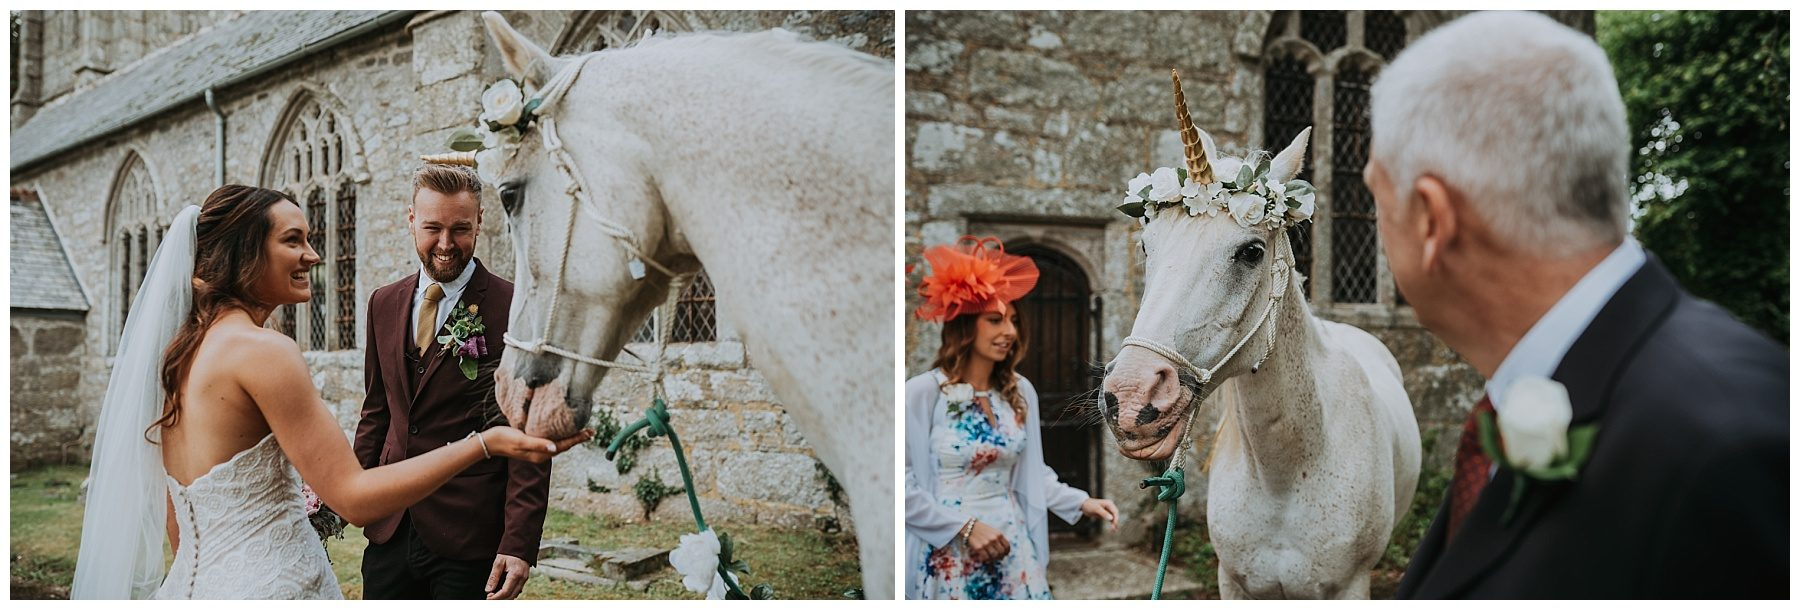 Cornwall wedding photographer unicorn at wedding